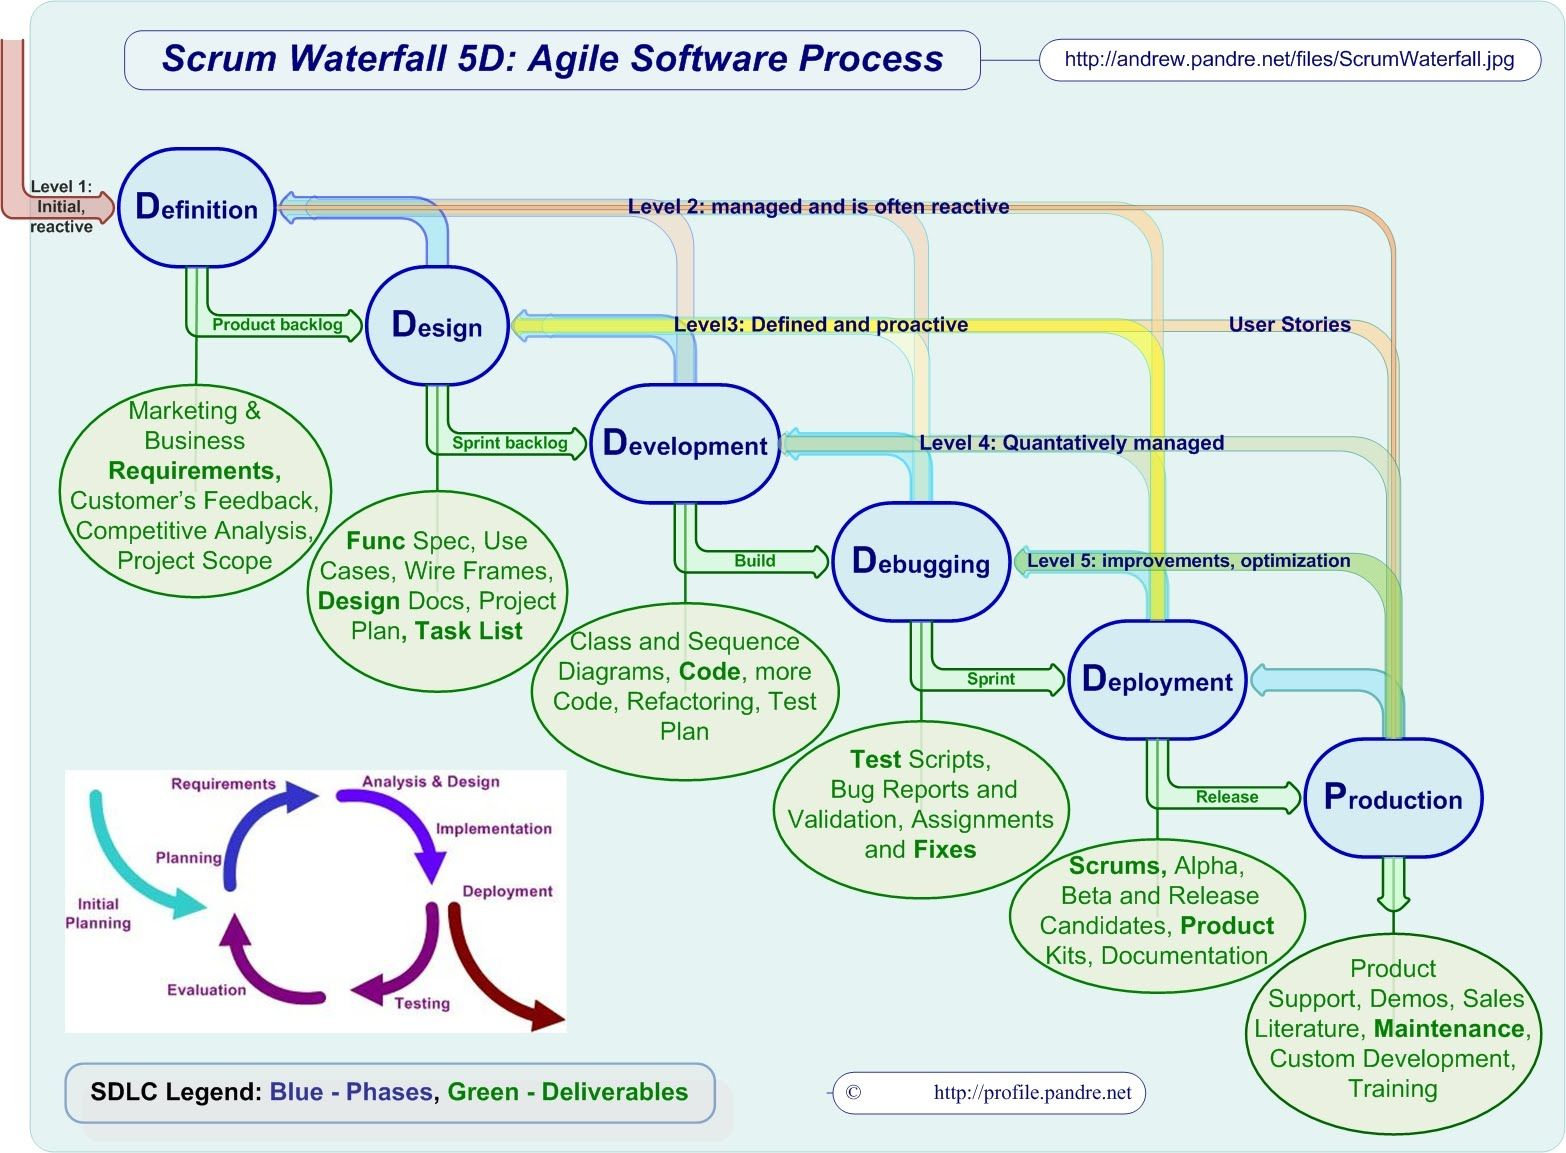 Scrum waterfall 5d agile software process agile and for Project management agile waterfall